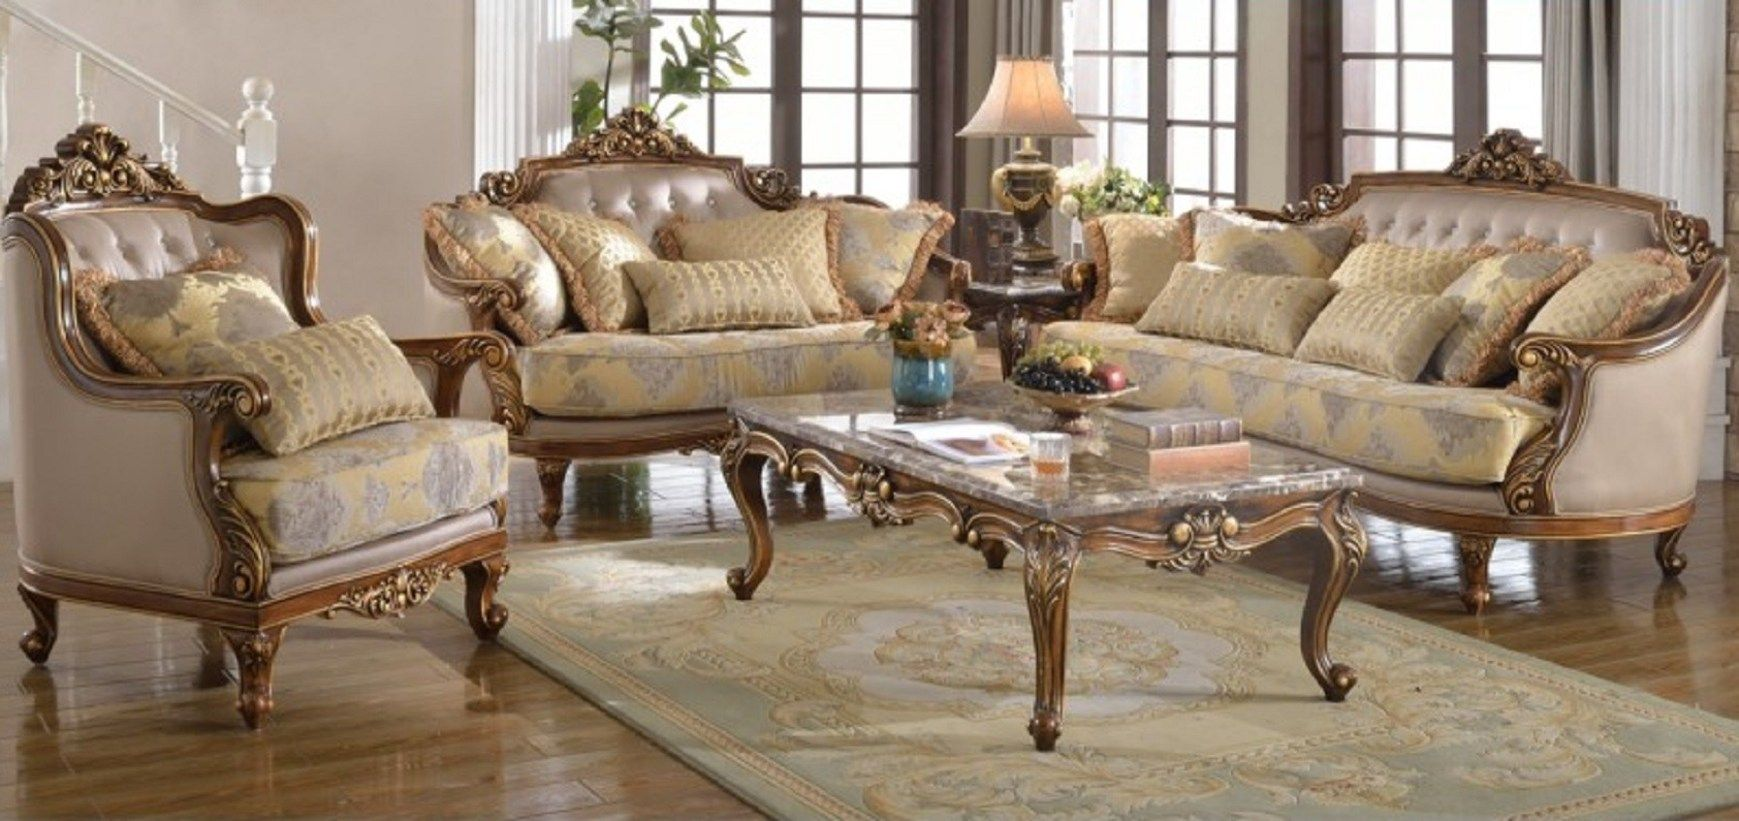 Hd 5800 Homey Design Royal Dining Collection Set Furniture